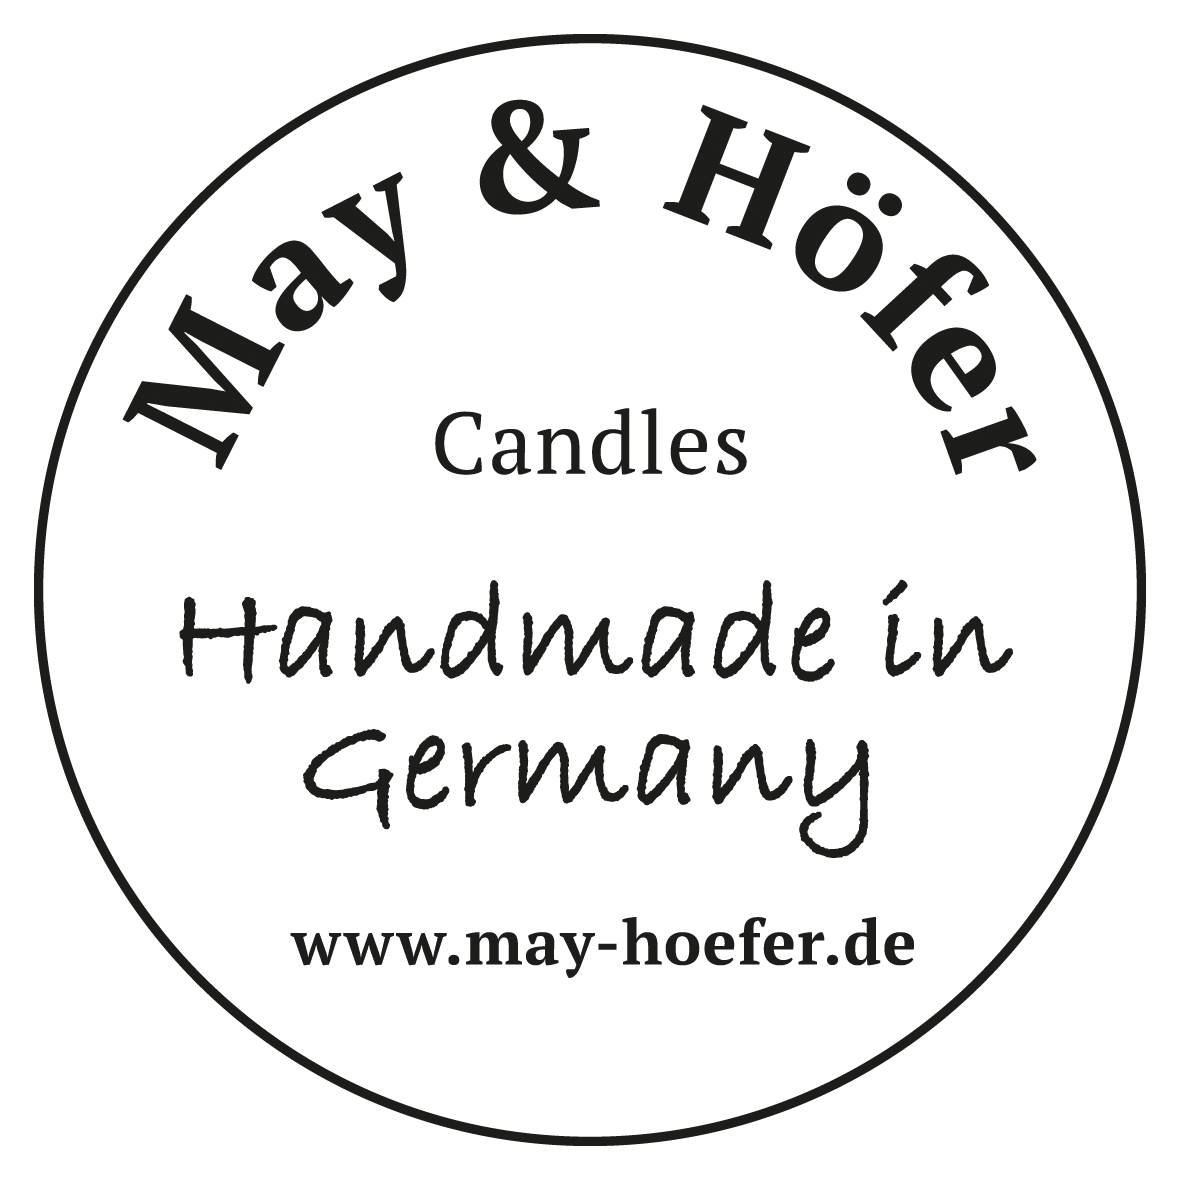 May & Höfer Candles